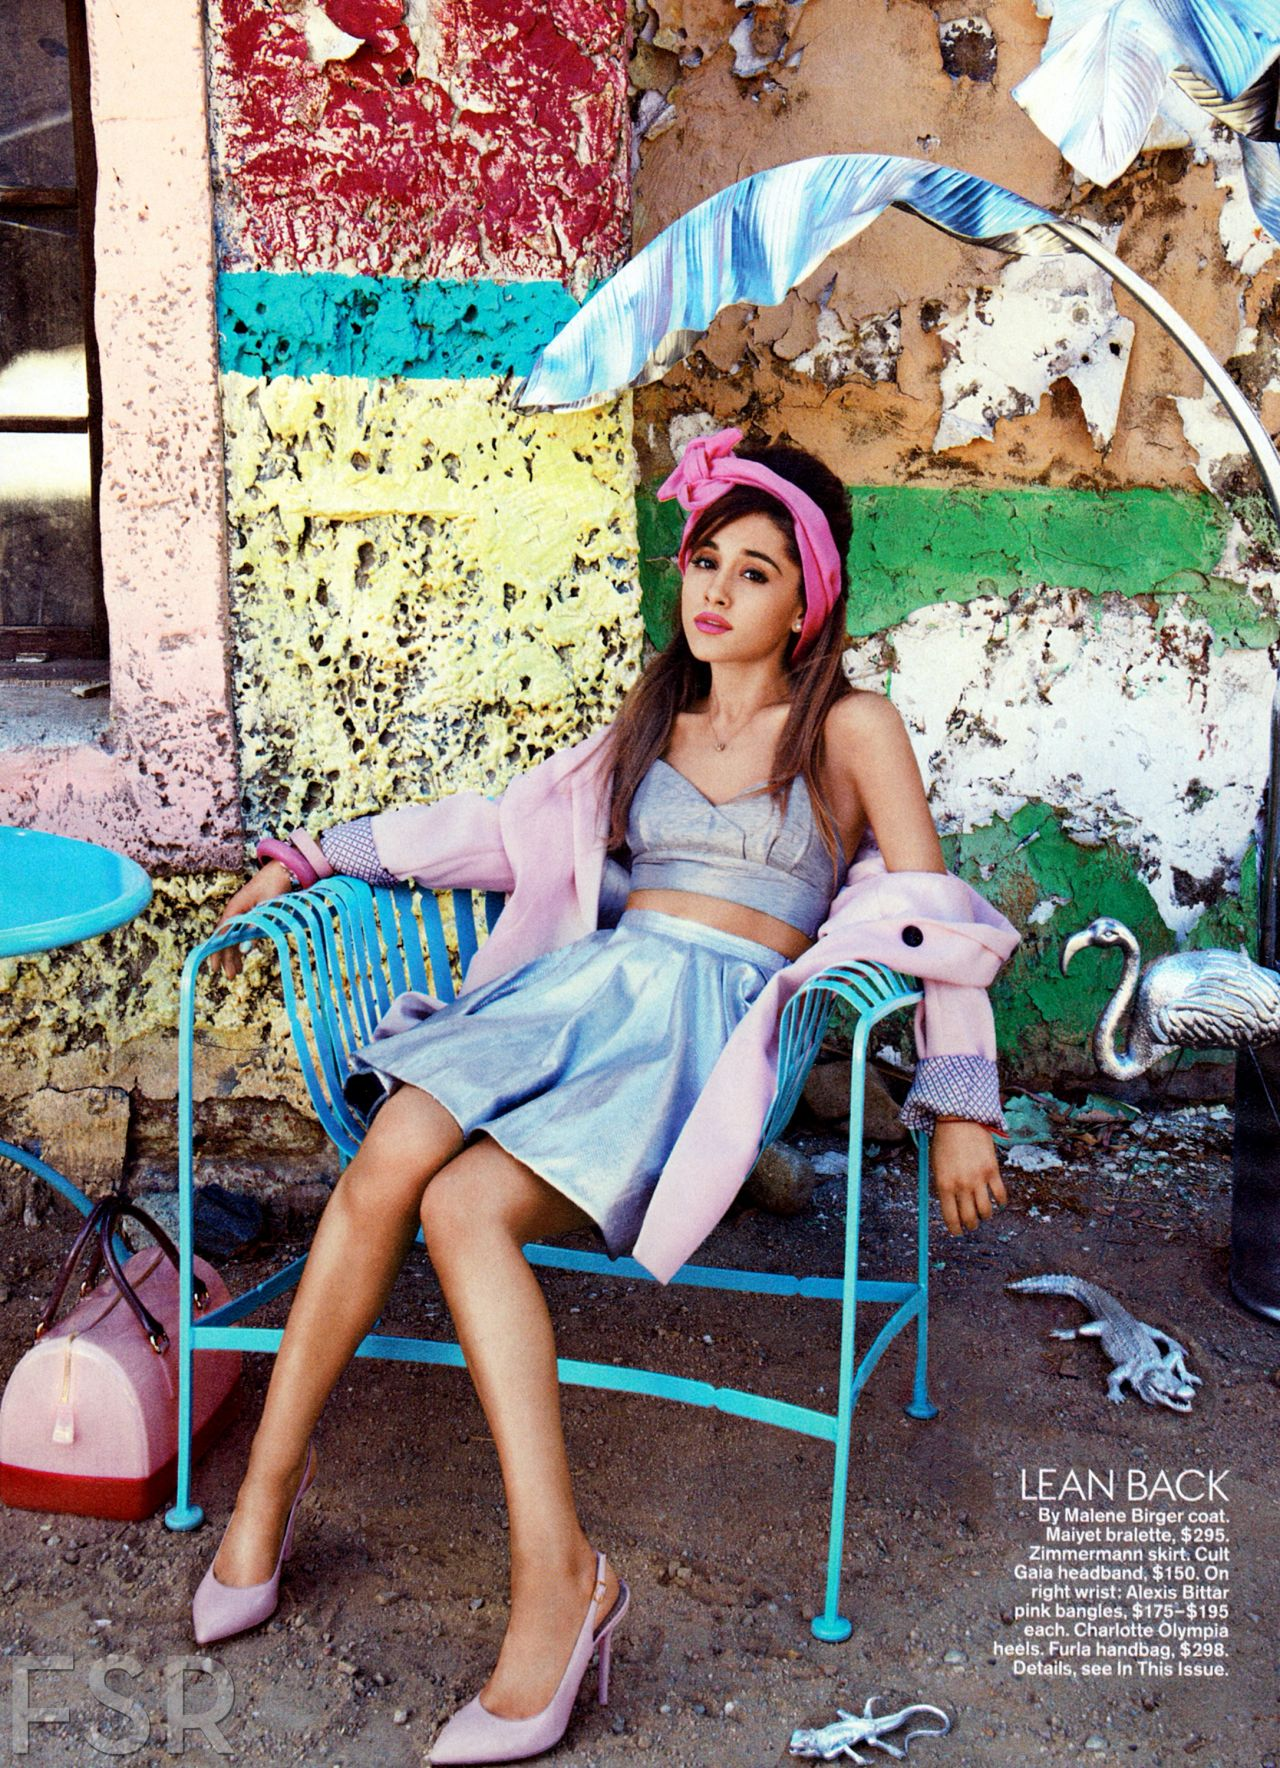 ariana grande photoshoot for teen vogue february 2014 issue